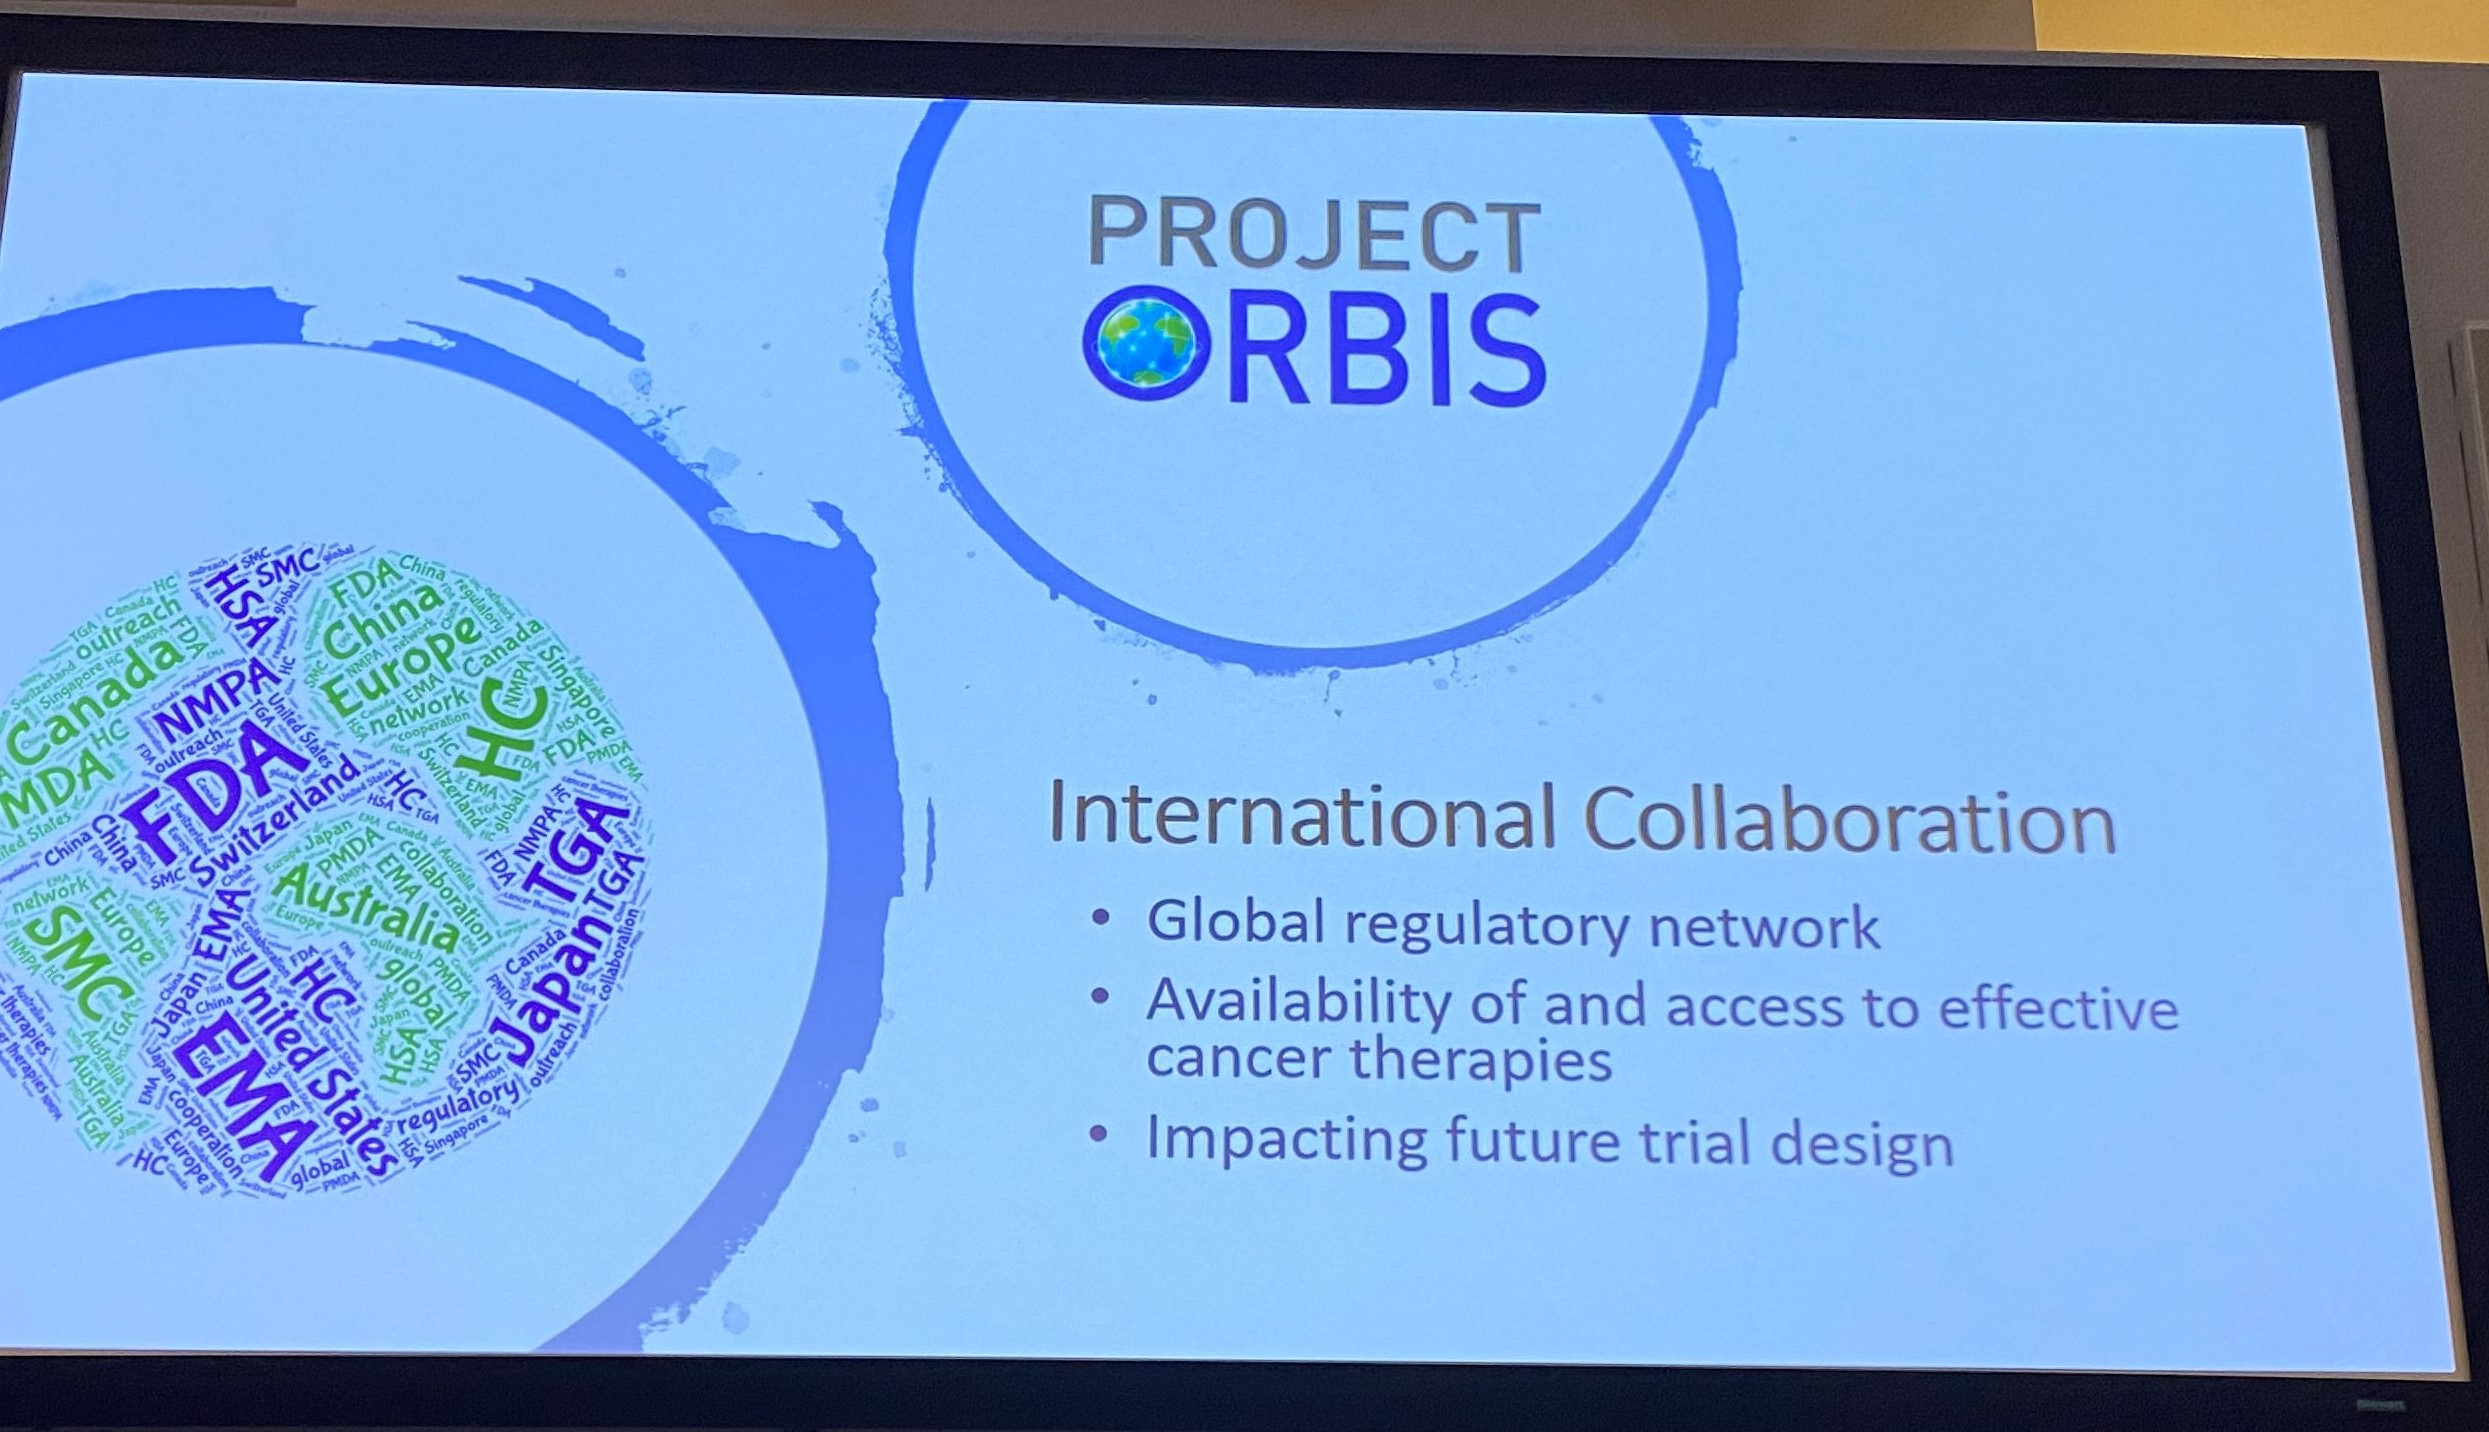 Project Orbis supports the global collaboration of cancer research endeavors.